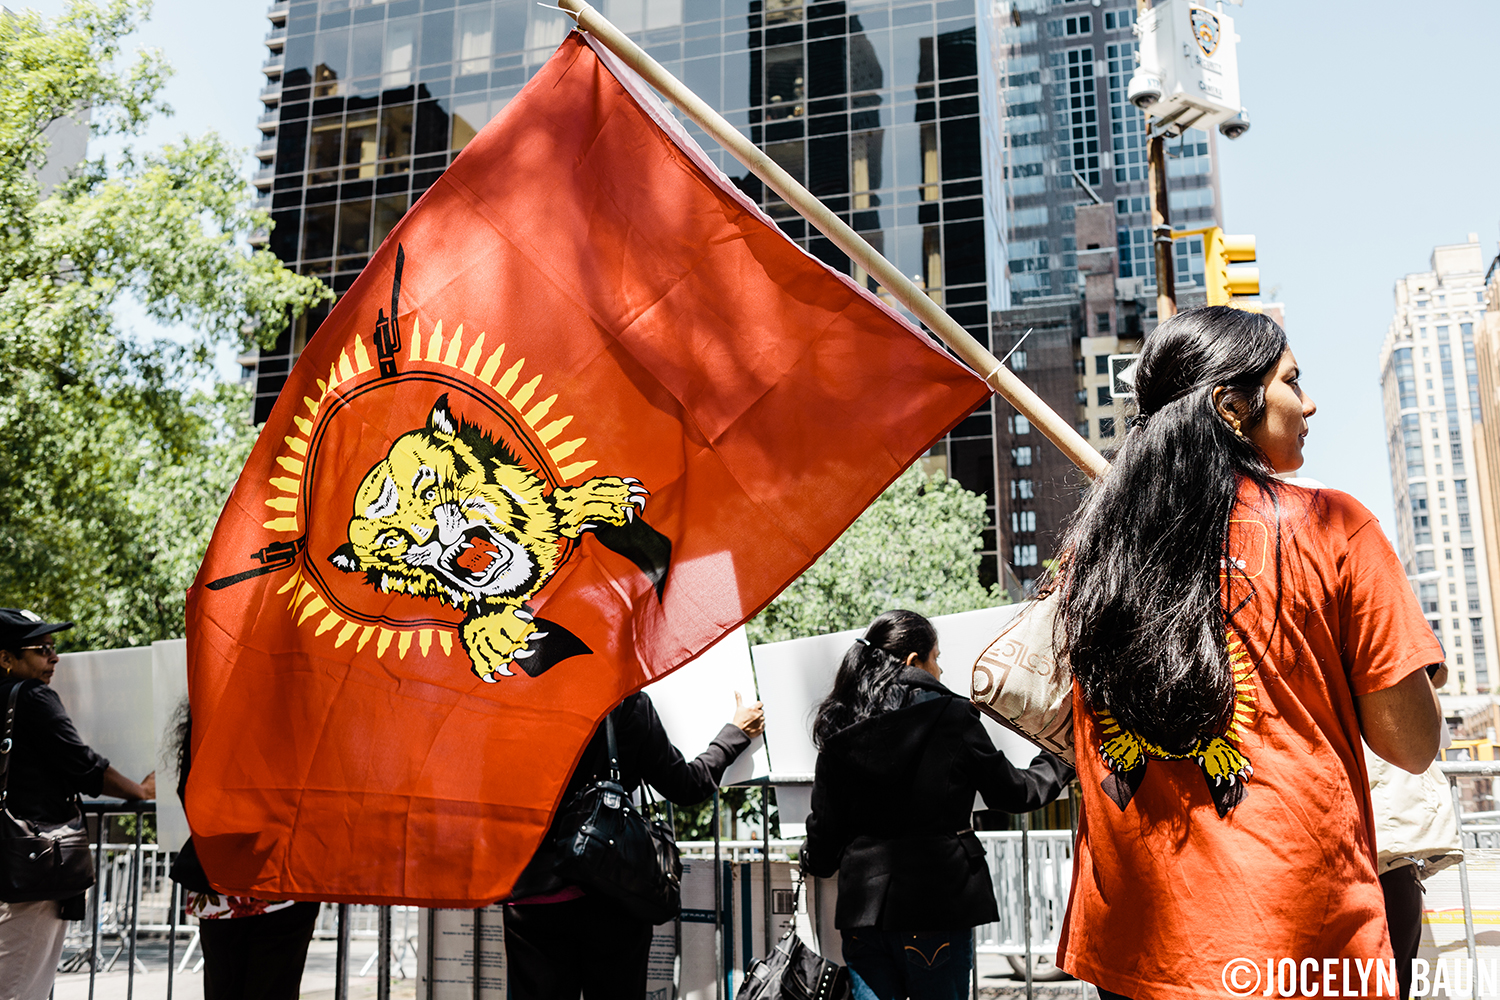 The Tamil Tiger flag during a protest at the UN. Sri Lankan Tamils want their government held accountable for war crimes.